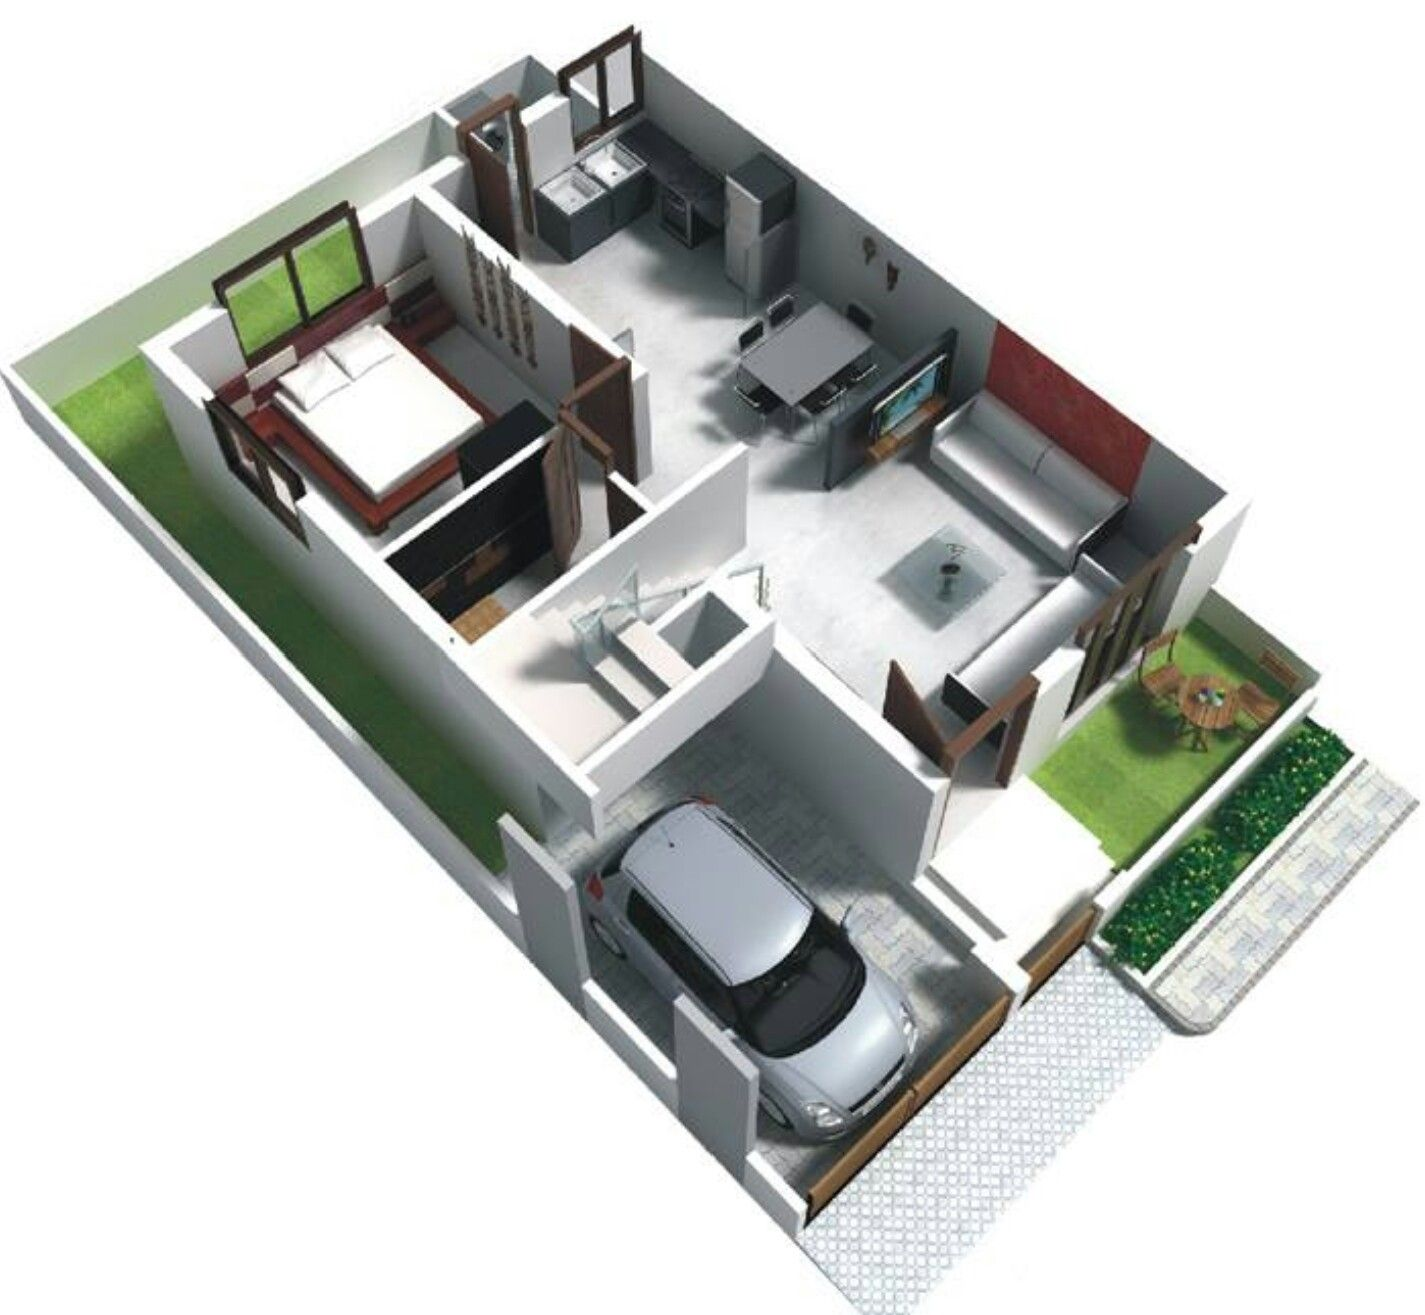 Pin by Alex Ventura on planos | House plans, House design ... Ventura Small Home Layout Design on small bedroom layout, small nursery layout, small kitchen layout, small home lighting, small house layout, small storage layout, small business layout, small home posters, small home drawing, small dining room layout, small home engineering, home office design layout, small stone layout, small home painting, small home construction, small apartment layout,